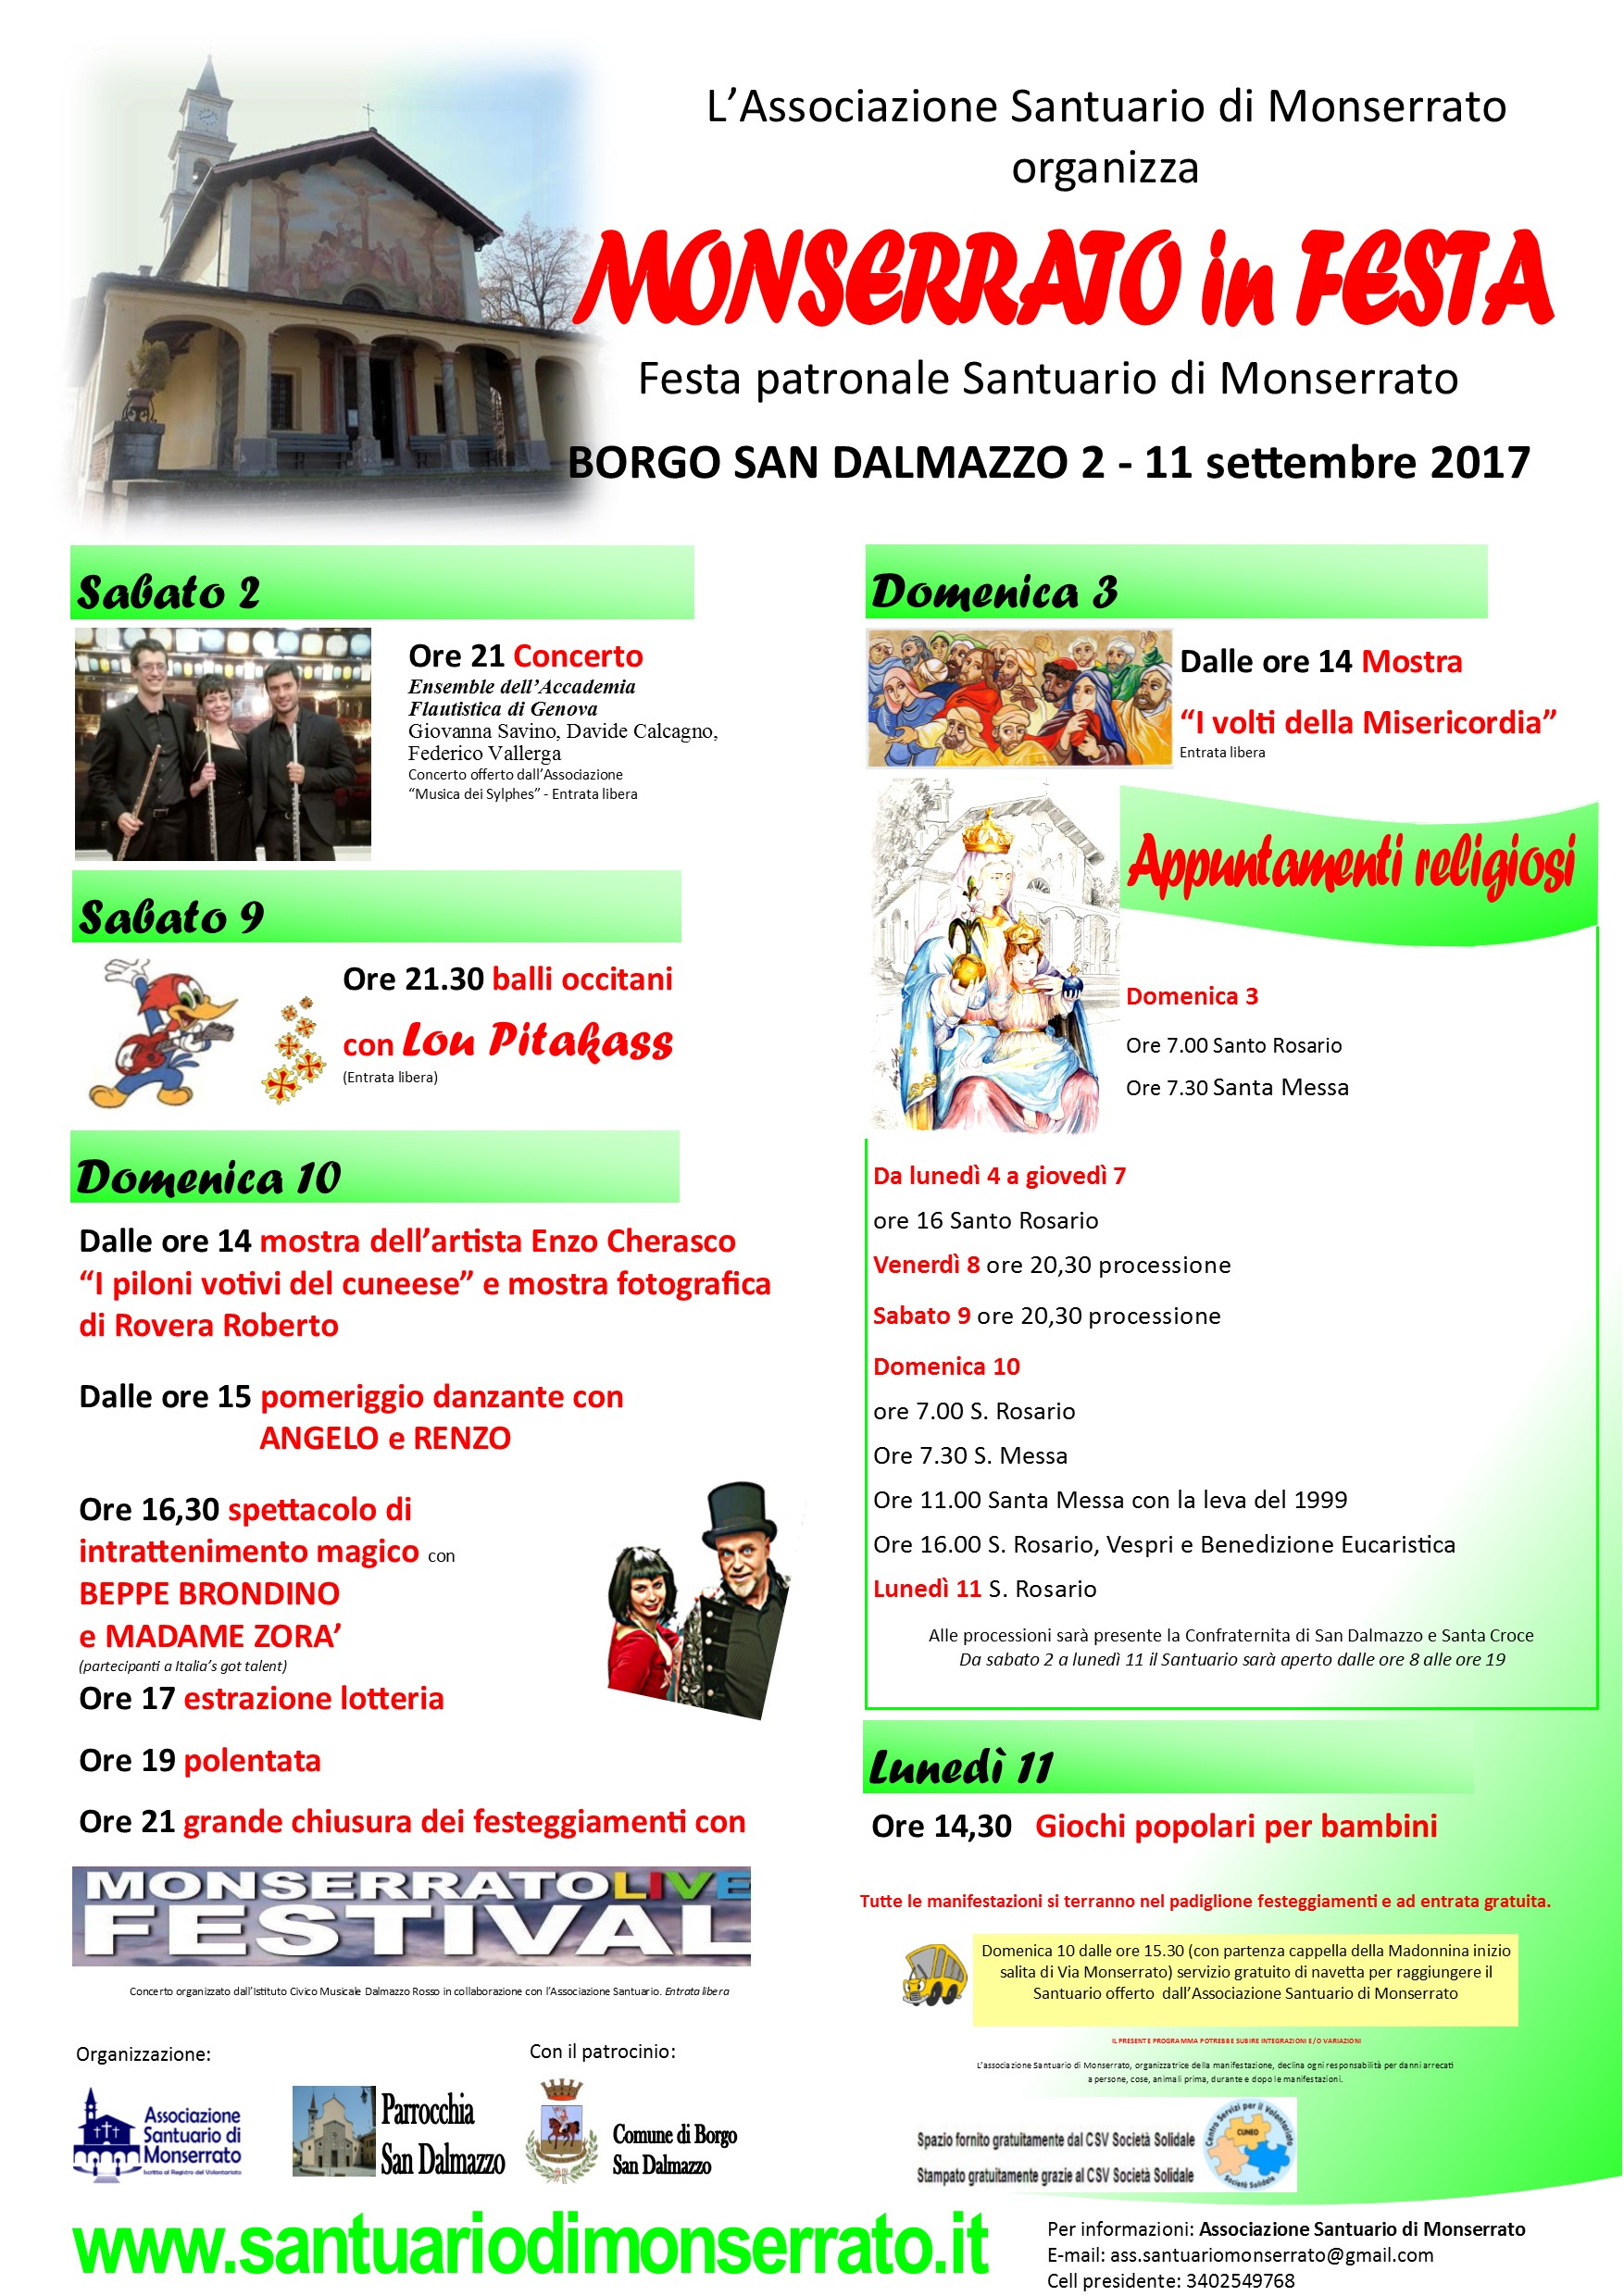 Manifesto Monserrato in festa 2017